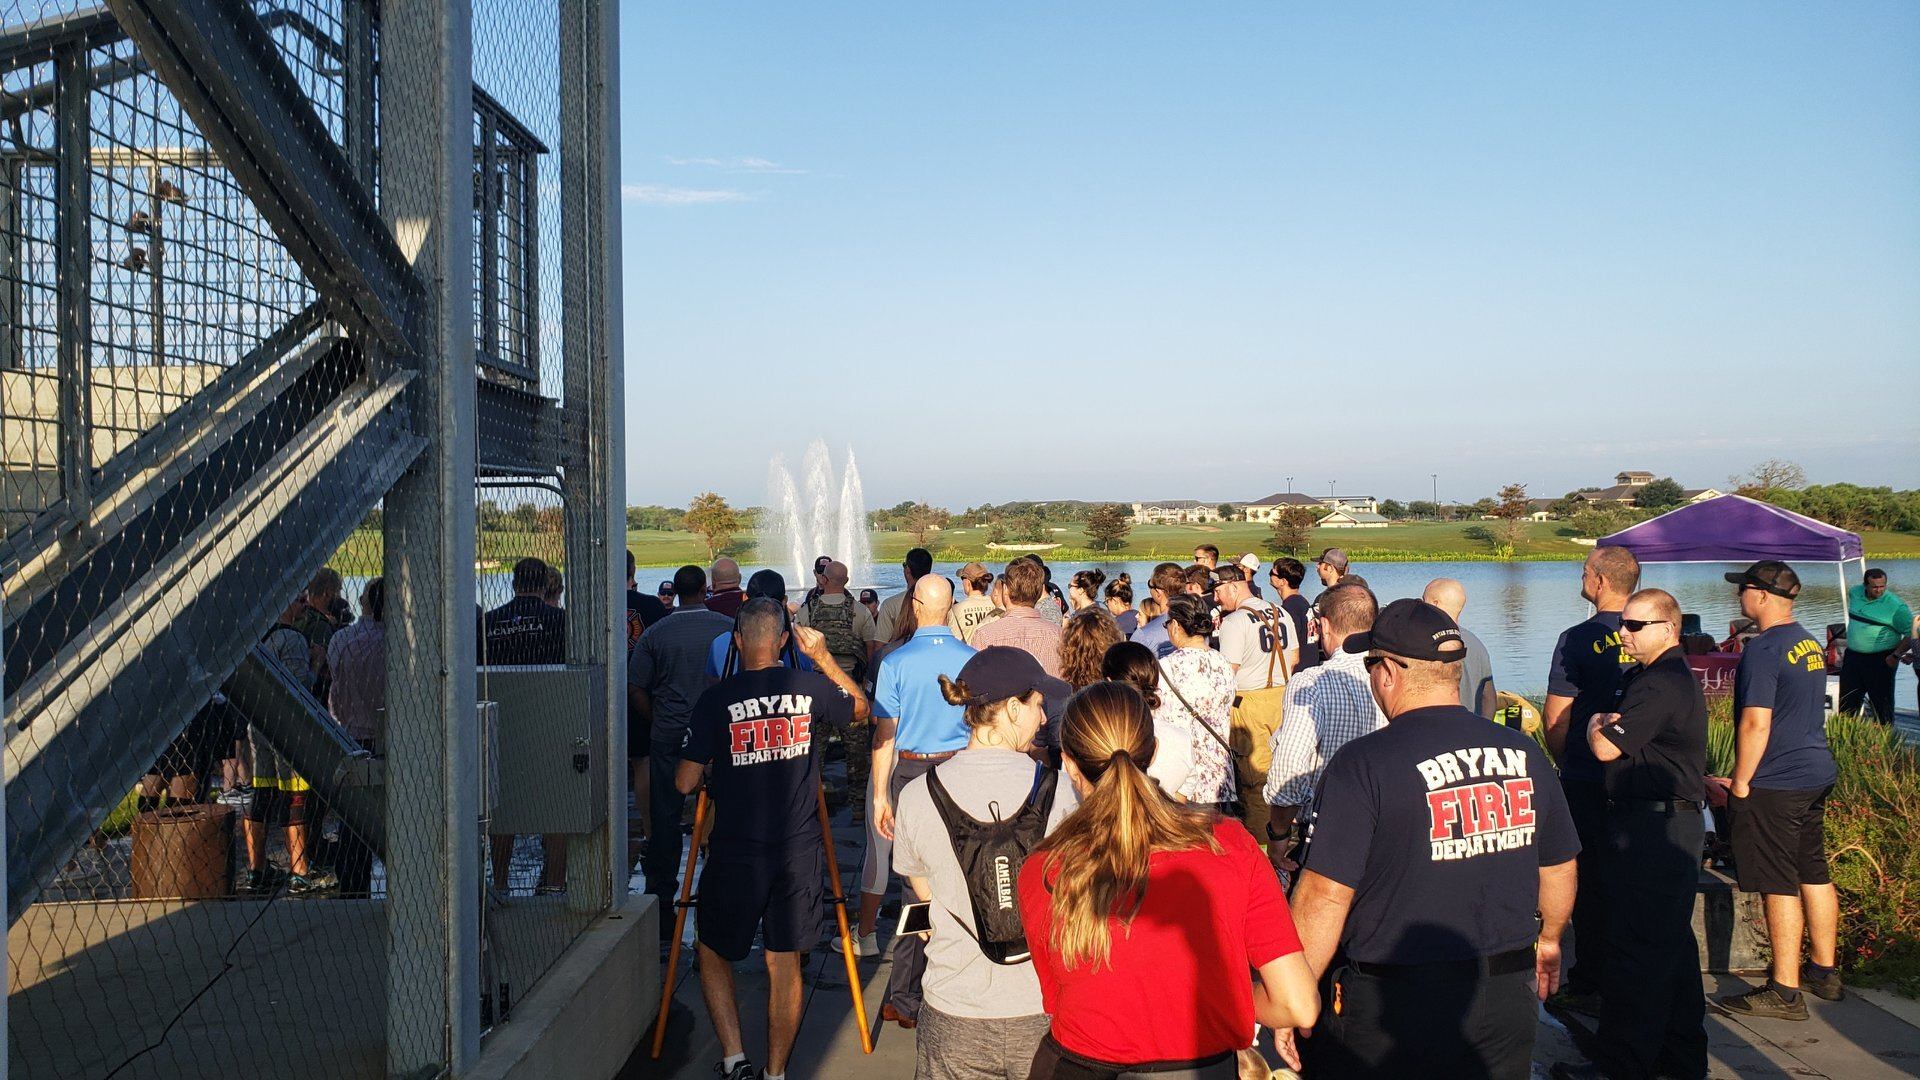 Bryan Fire Department at Annual 9/11 Memorial Stair Climb, The Stella Hotel / Lake Walk Town Center (Photo by: Bryan Fire Department)